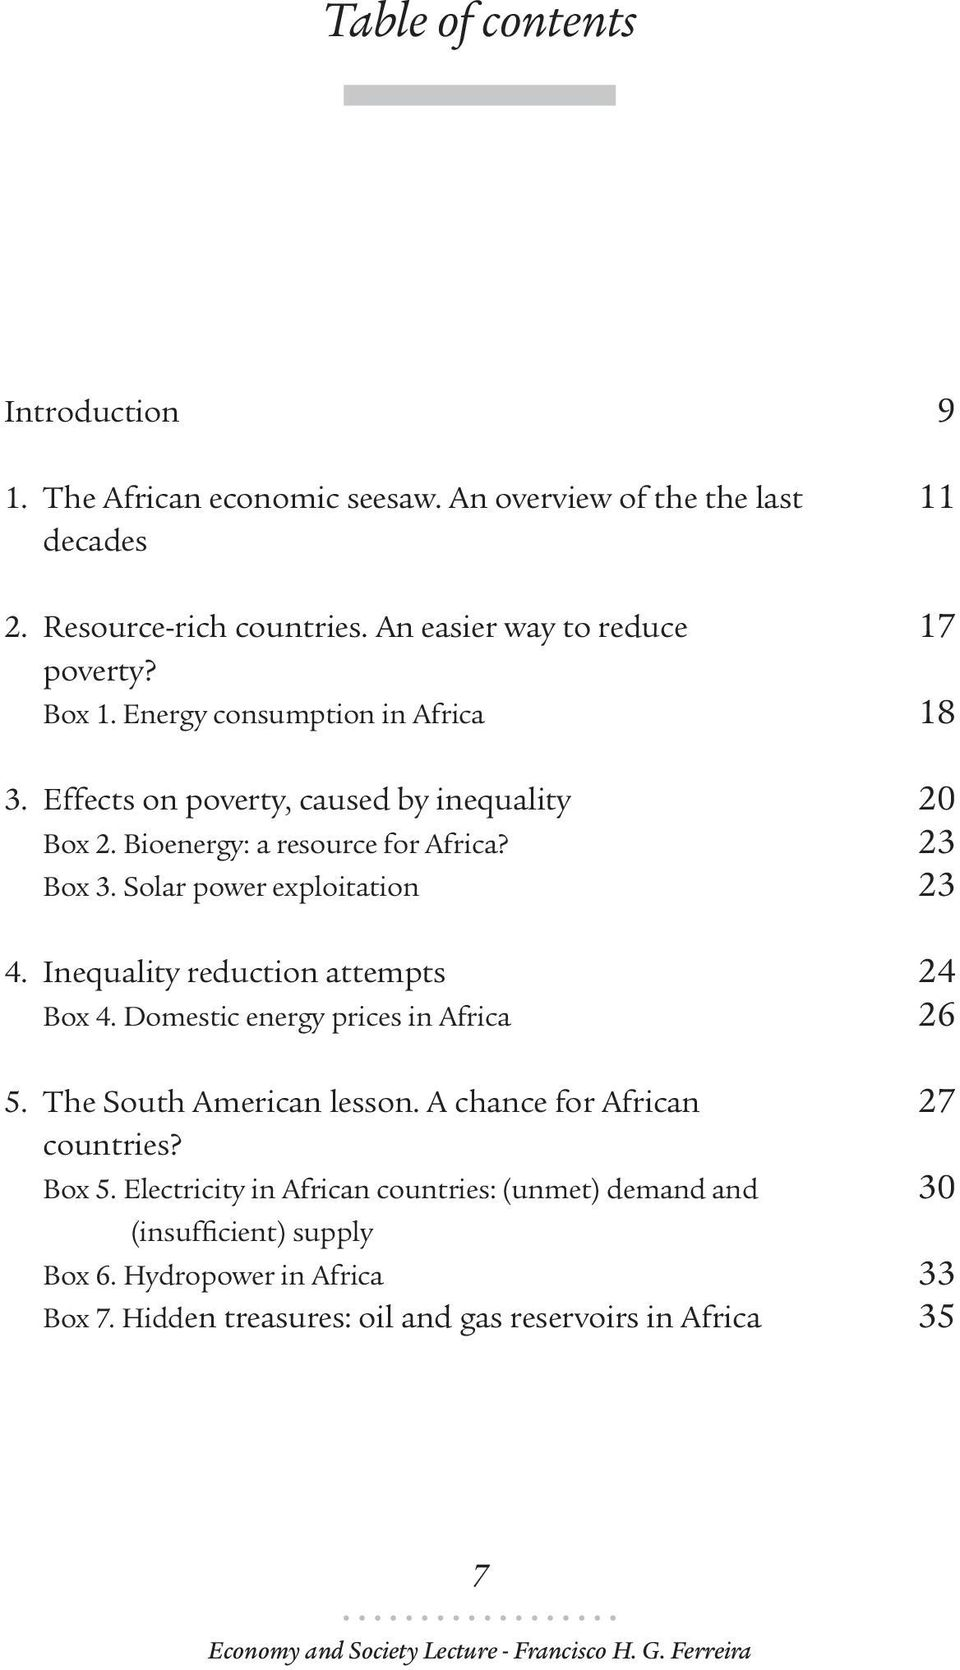 Inequality reduction attempts Box 4. Domestic energy prices in Africa 5. The South American lesson. A chance for African countries? Box 5.